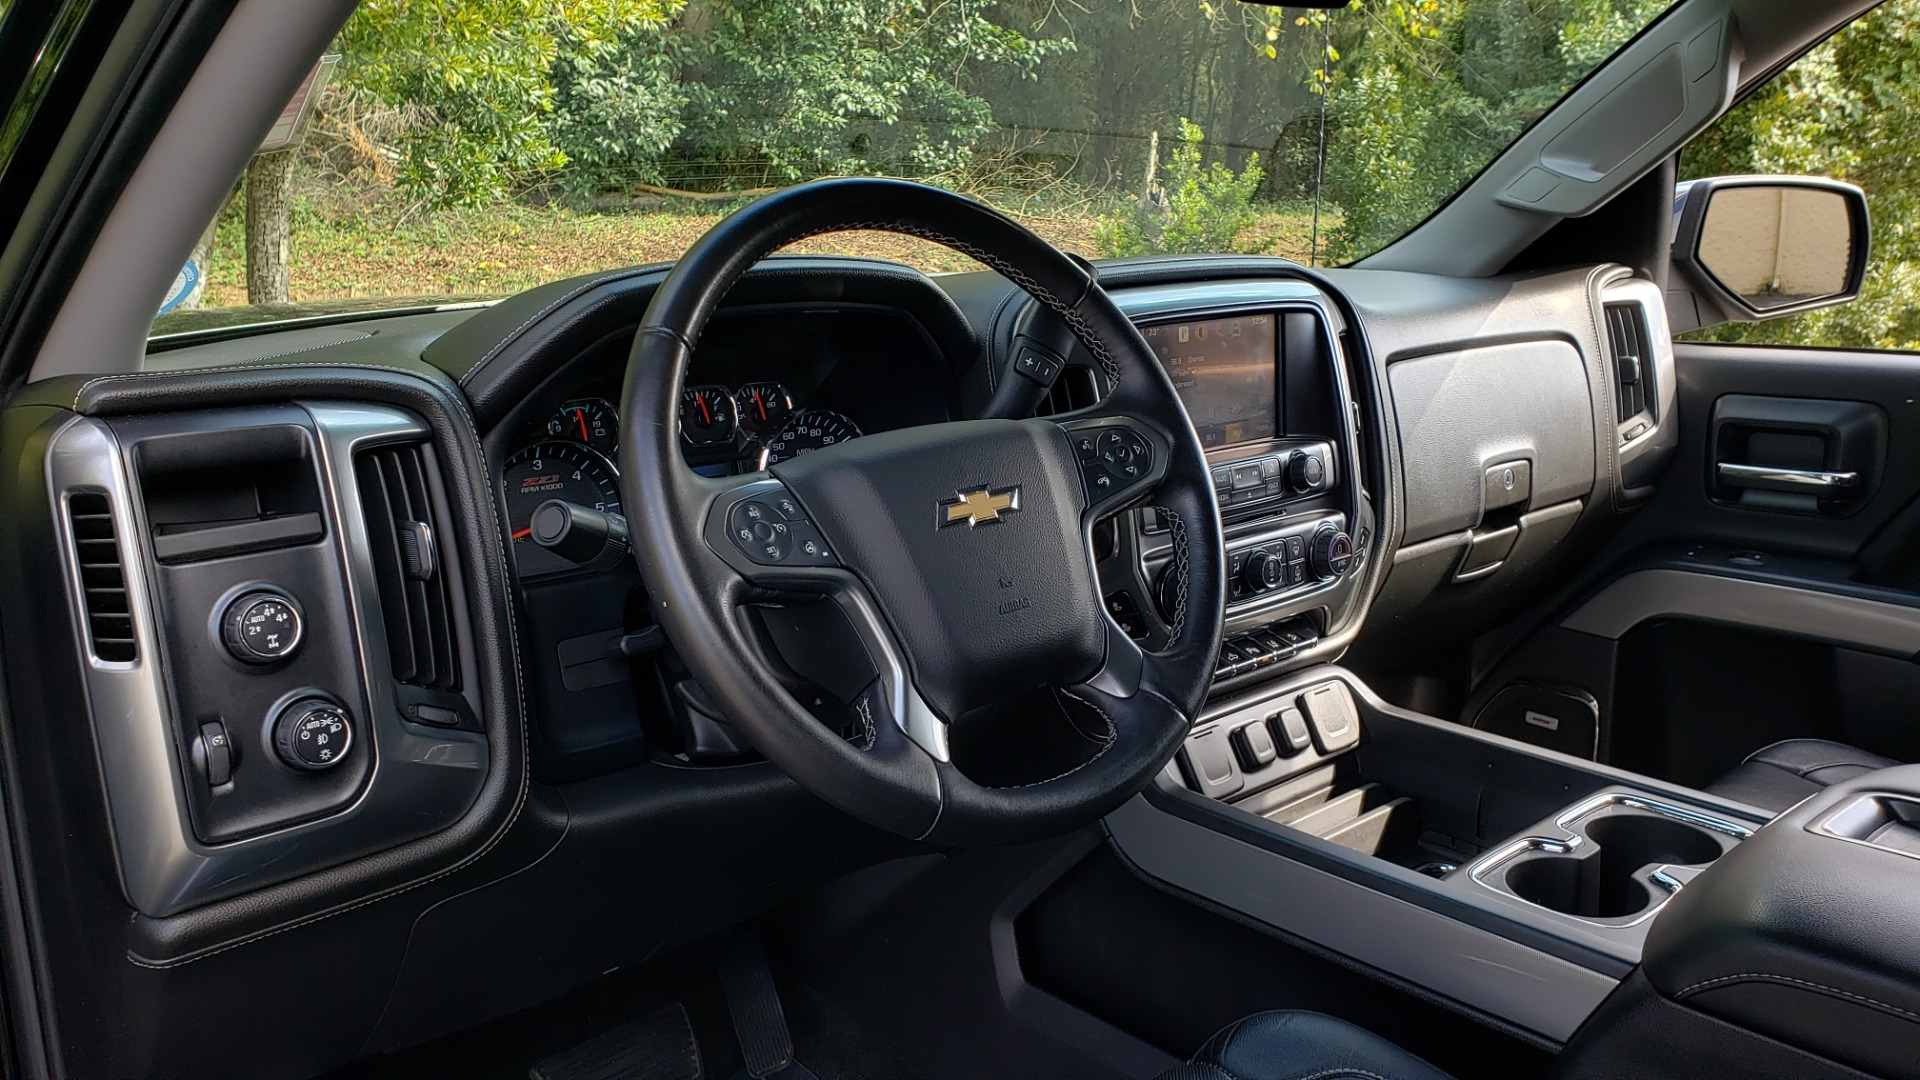 Used 2014 Chevrolet SILVERADO 1500 CREWCAB / LTZ PLUS PKG / 4WD / 2LZ / NAV / BOSE / REARVIEW for sale Sold at Formula Imports in Charlotte NC 28227 41